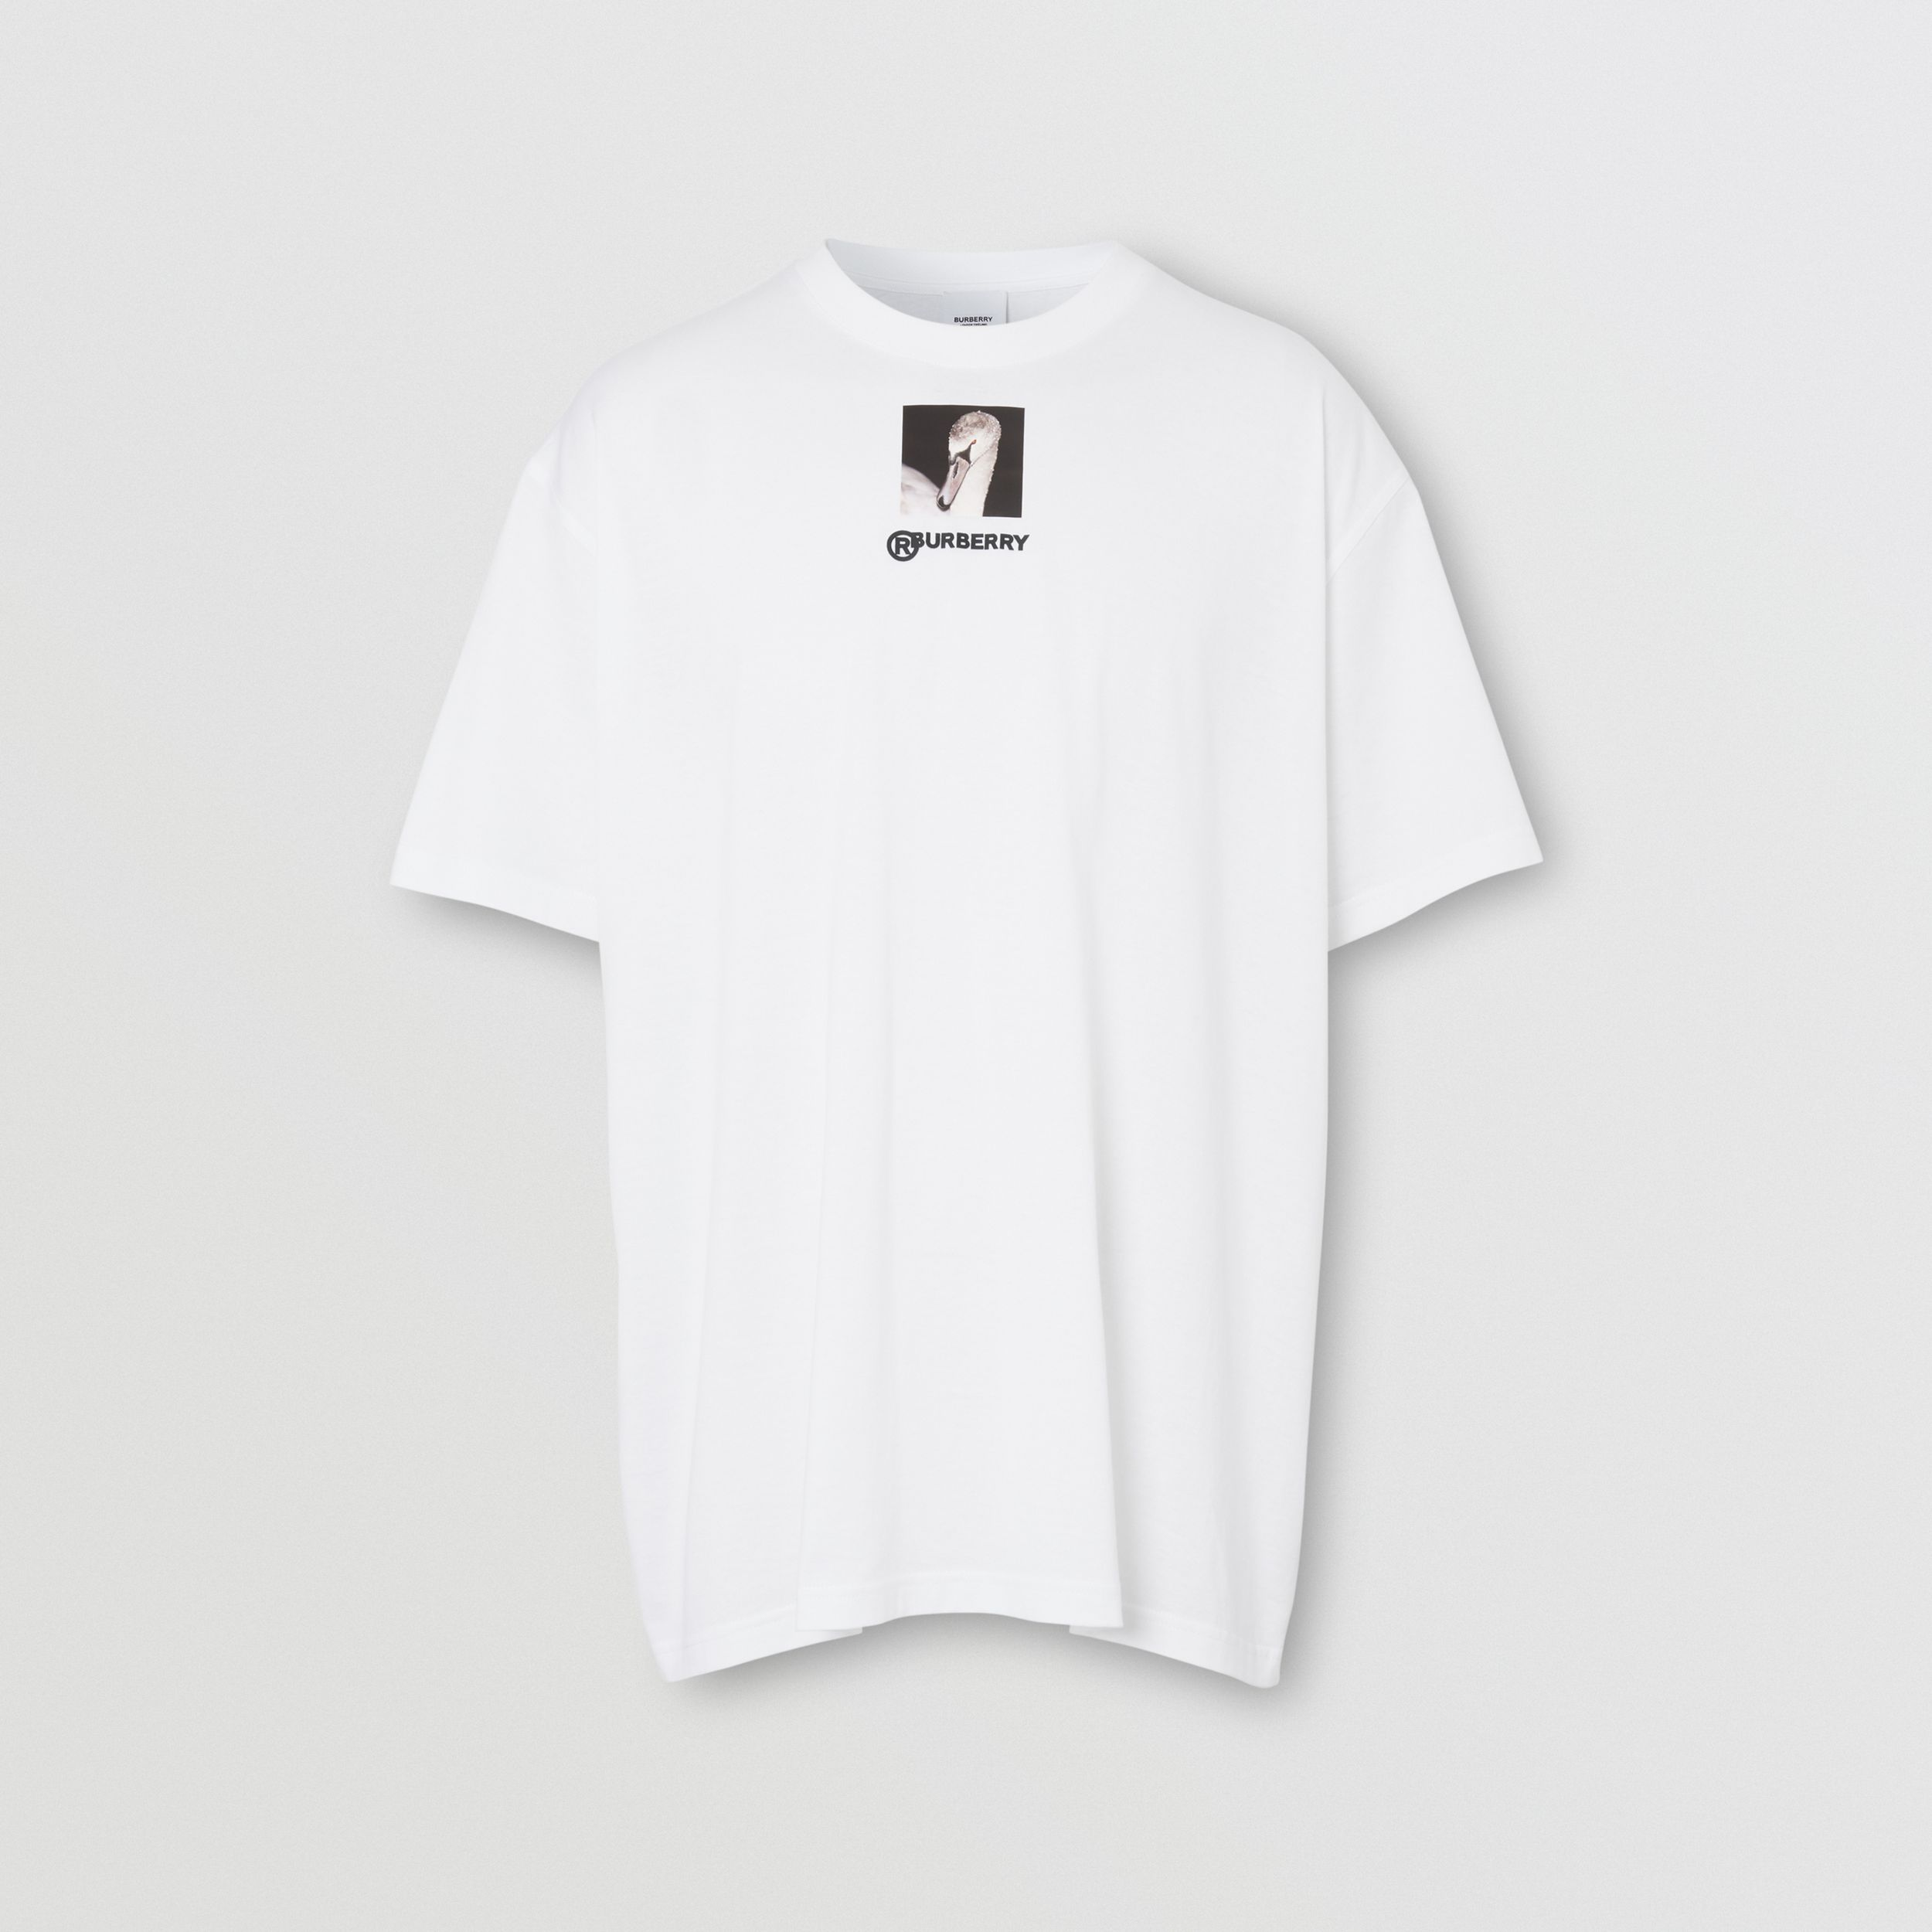 Swan and Logo Print Cotton Oversized T-shirt in Optic White - Men | Burberry - 4